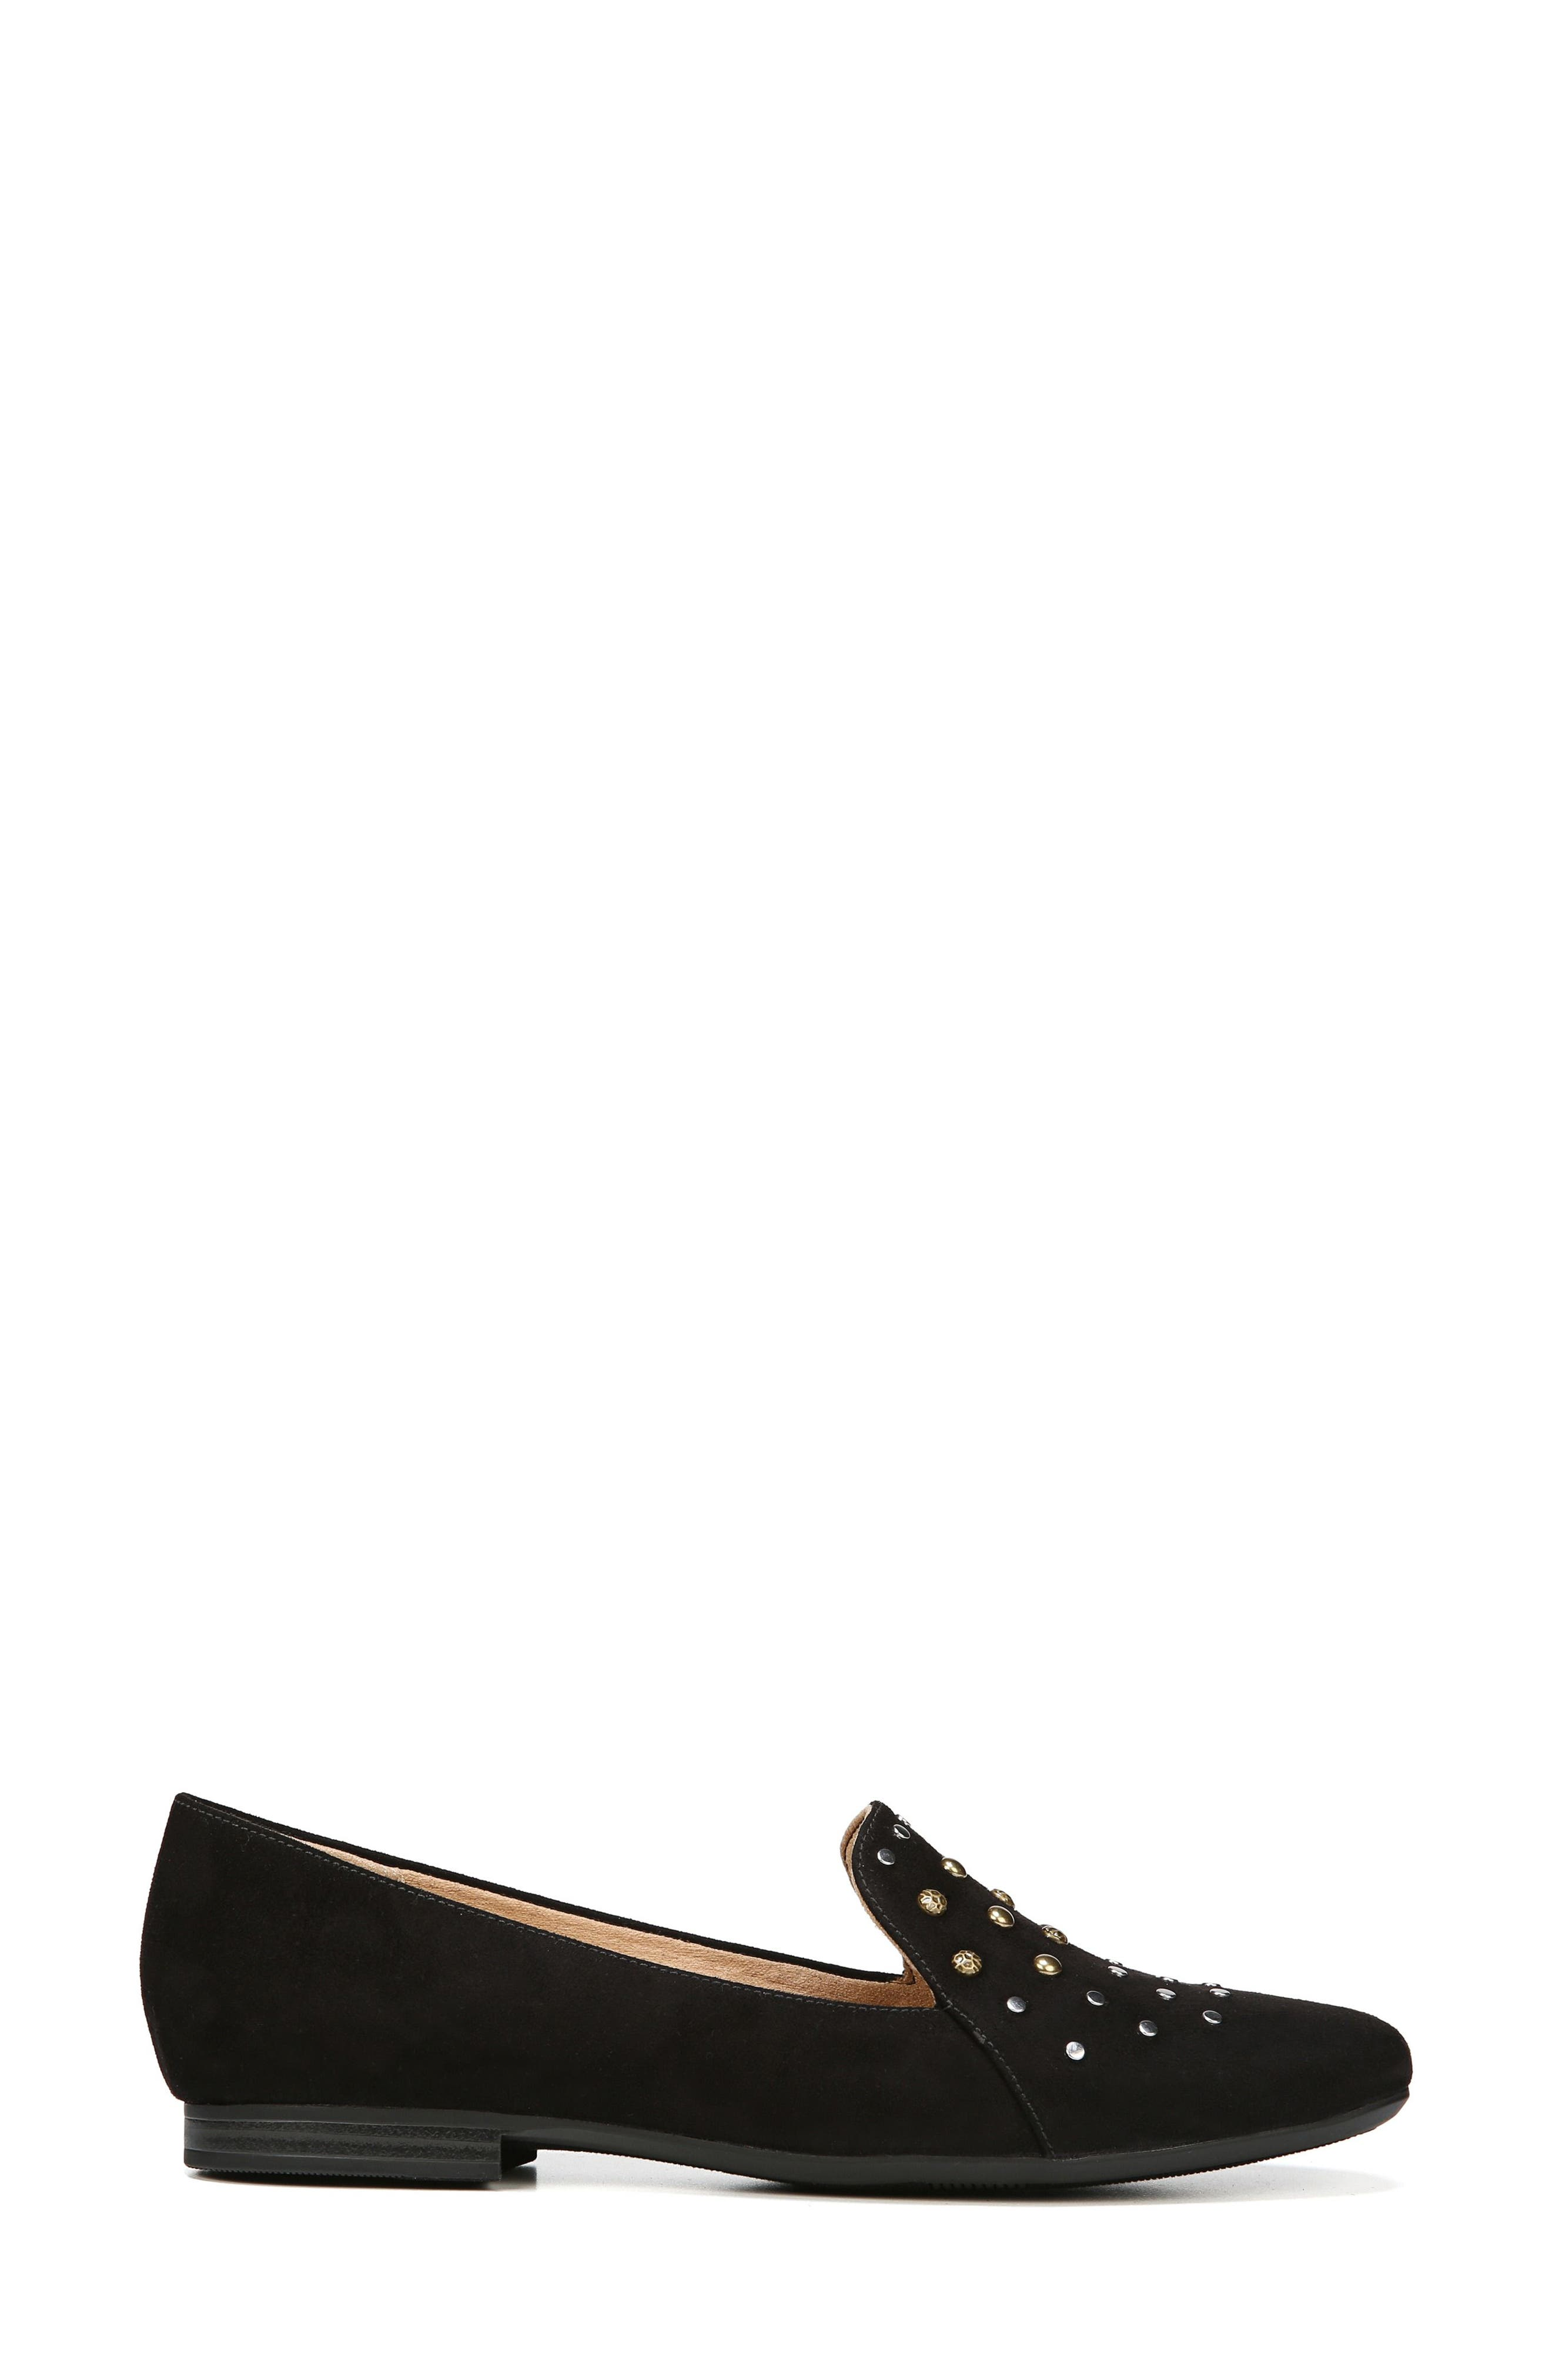 NATURALIZER, Emiline 4 Loafer, Alternate thumbnail 3, color, BLACK FABRIC